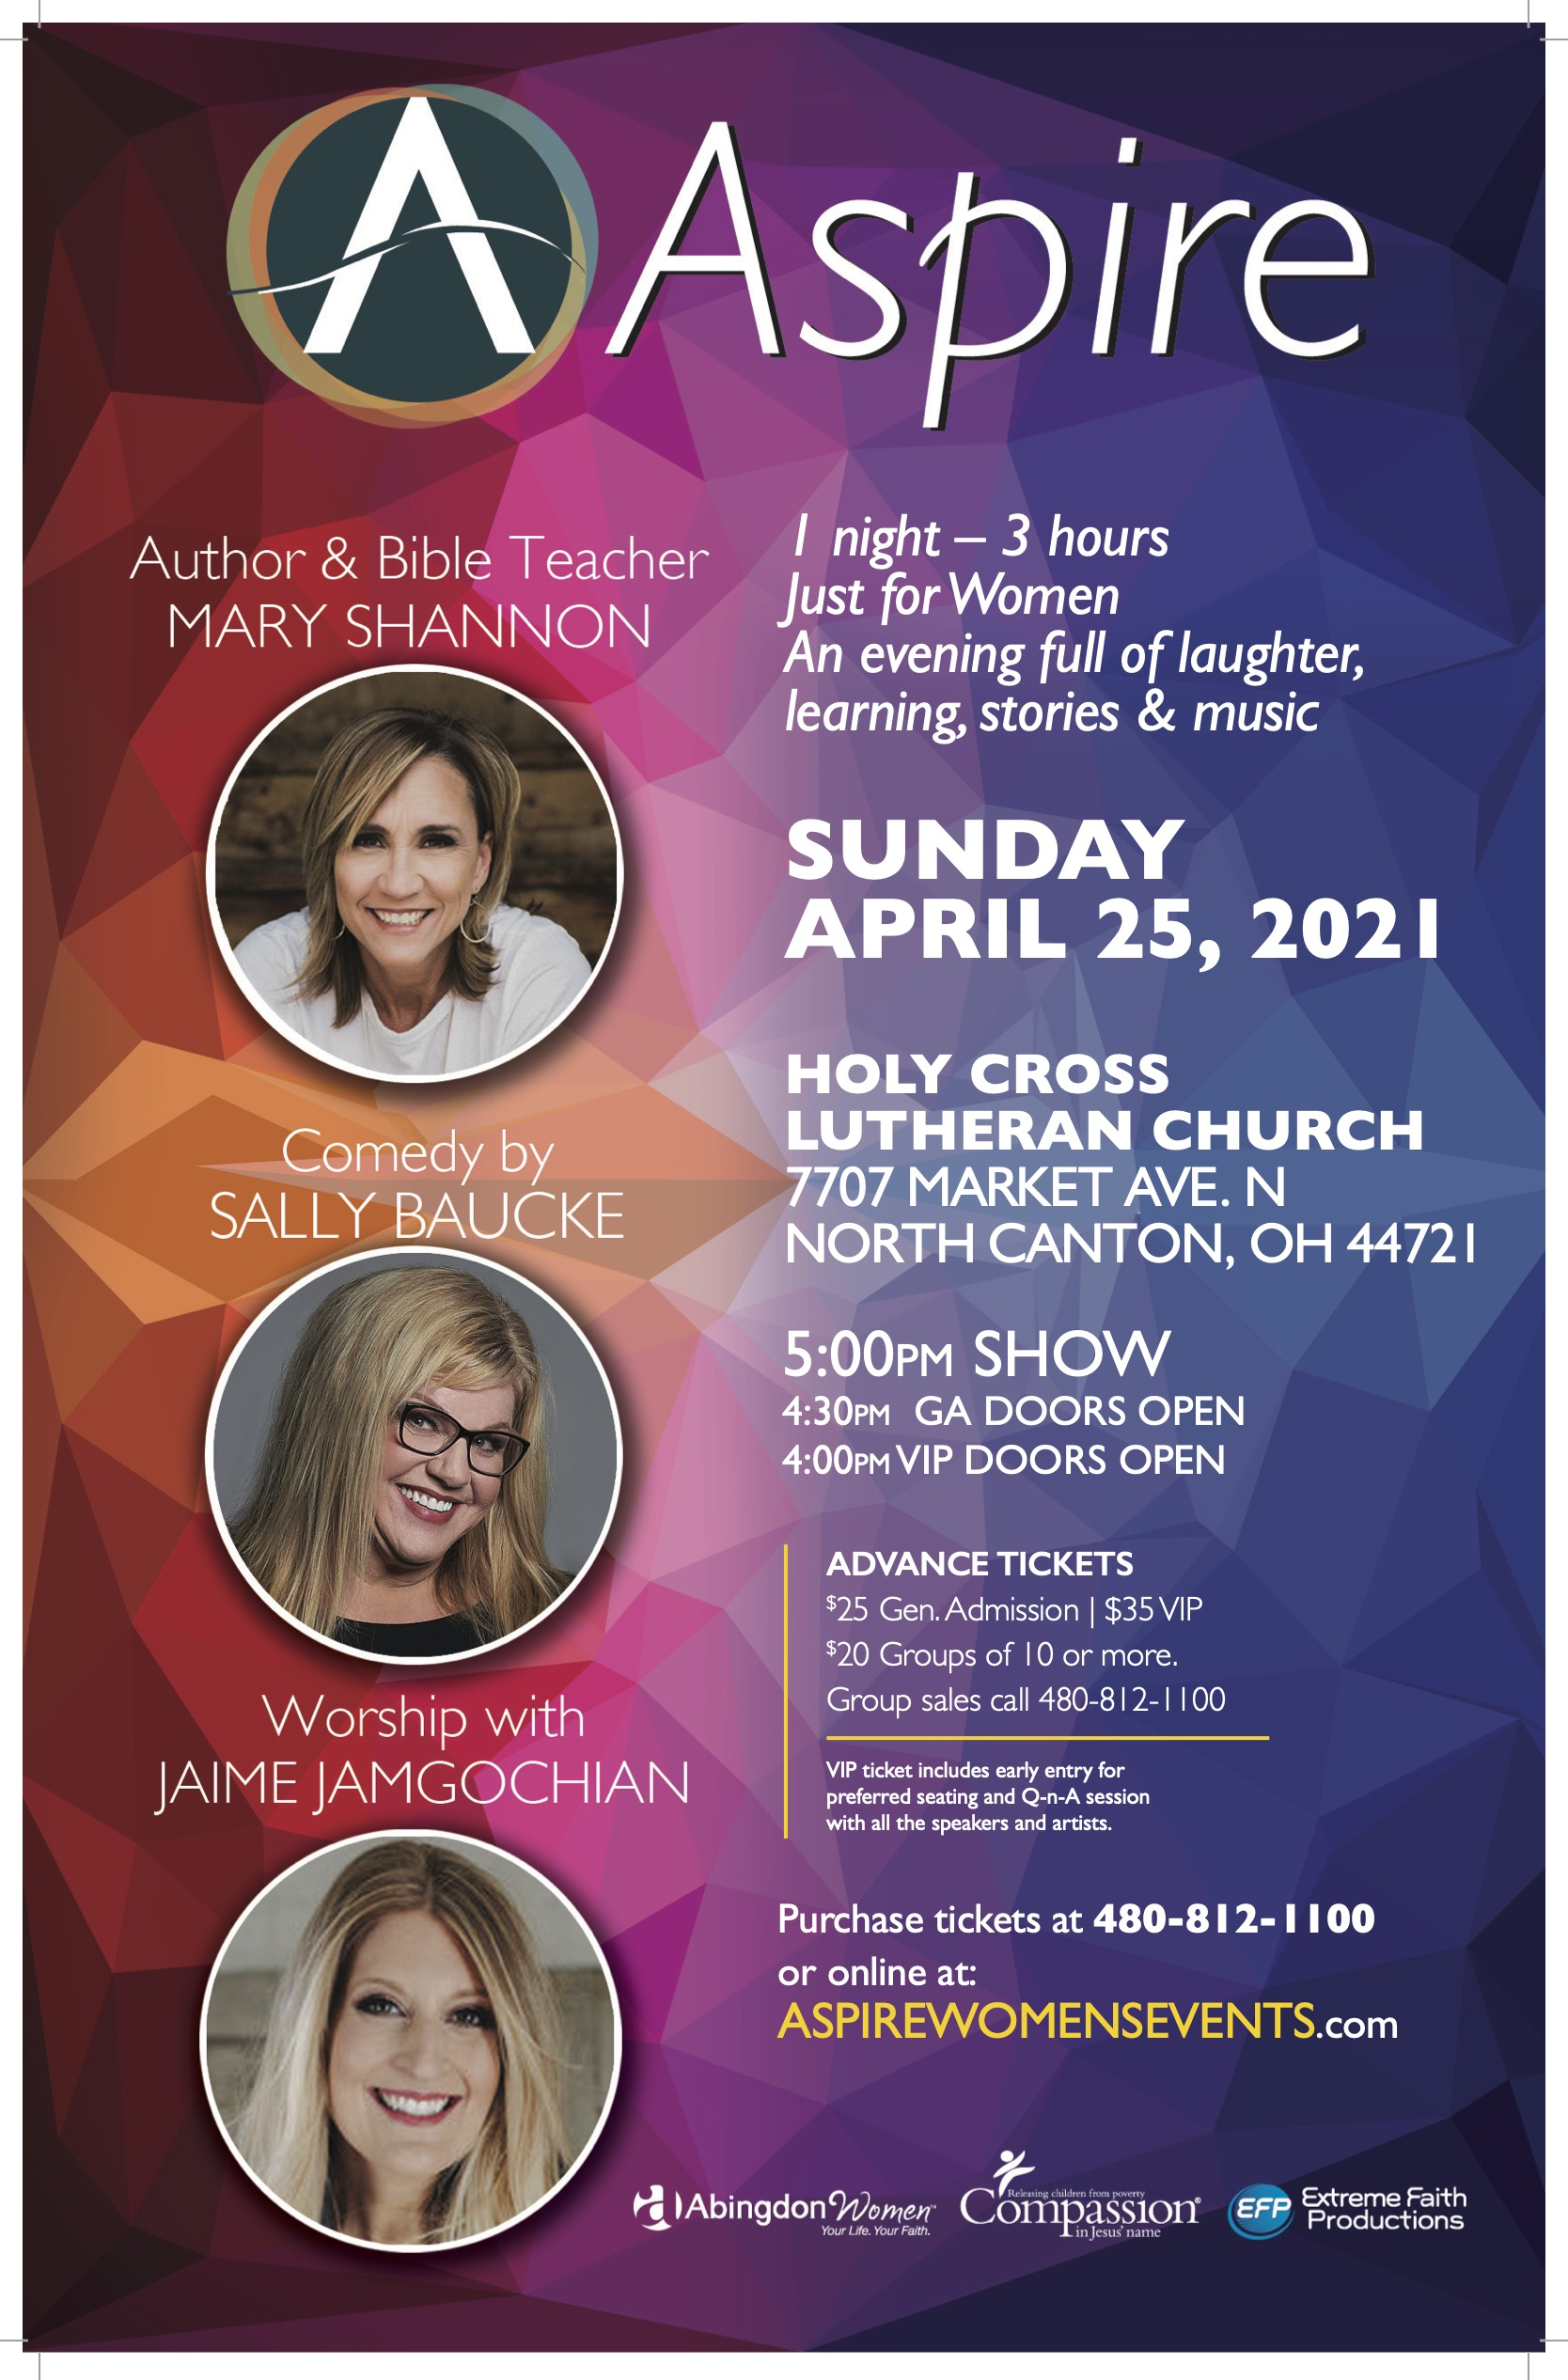 ASPIRE SUN-April 24-Canton OH